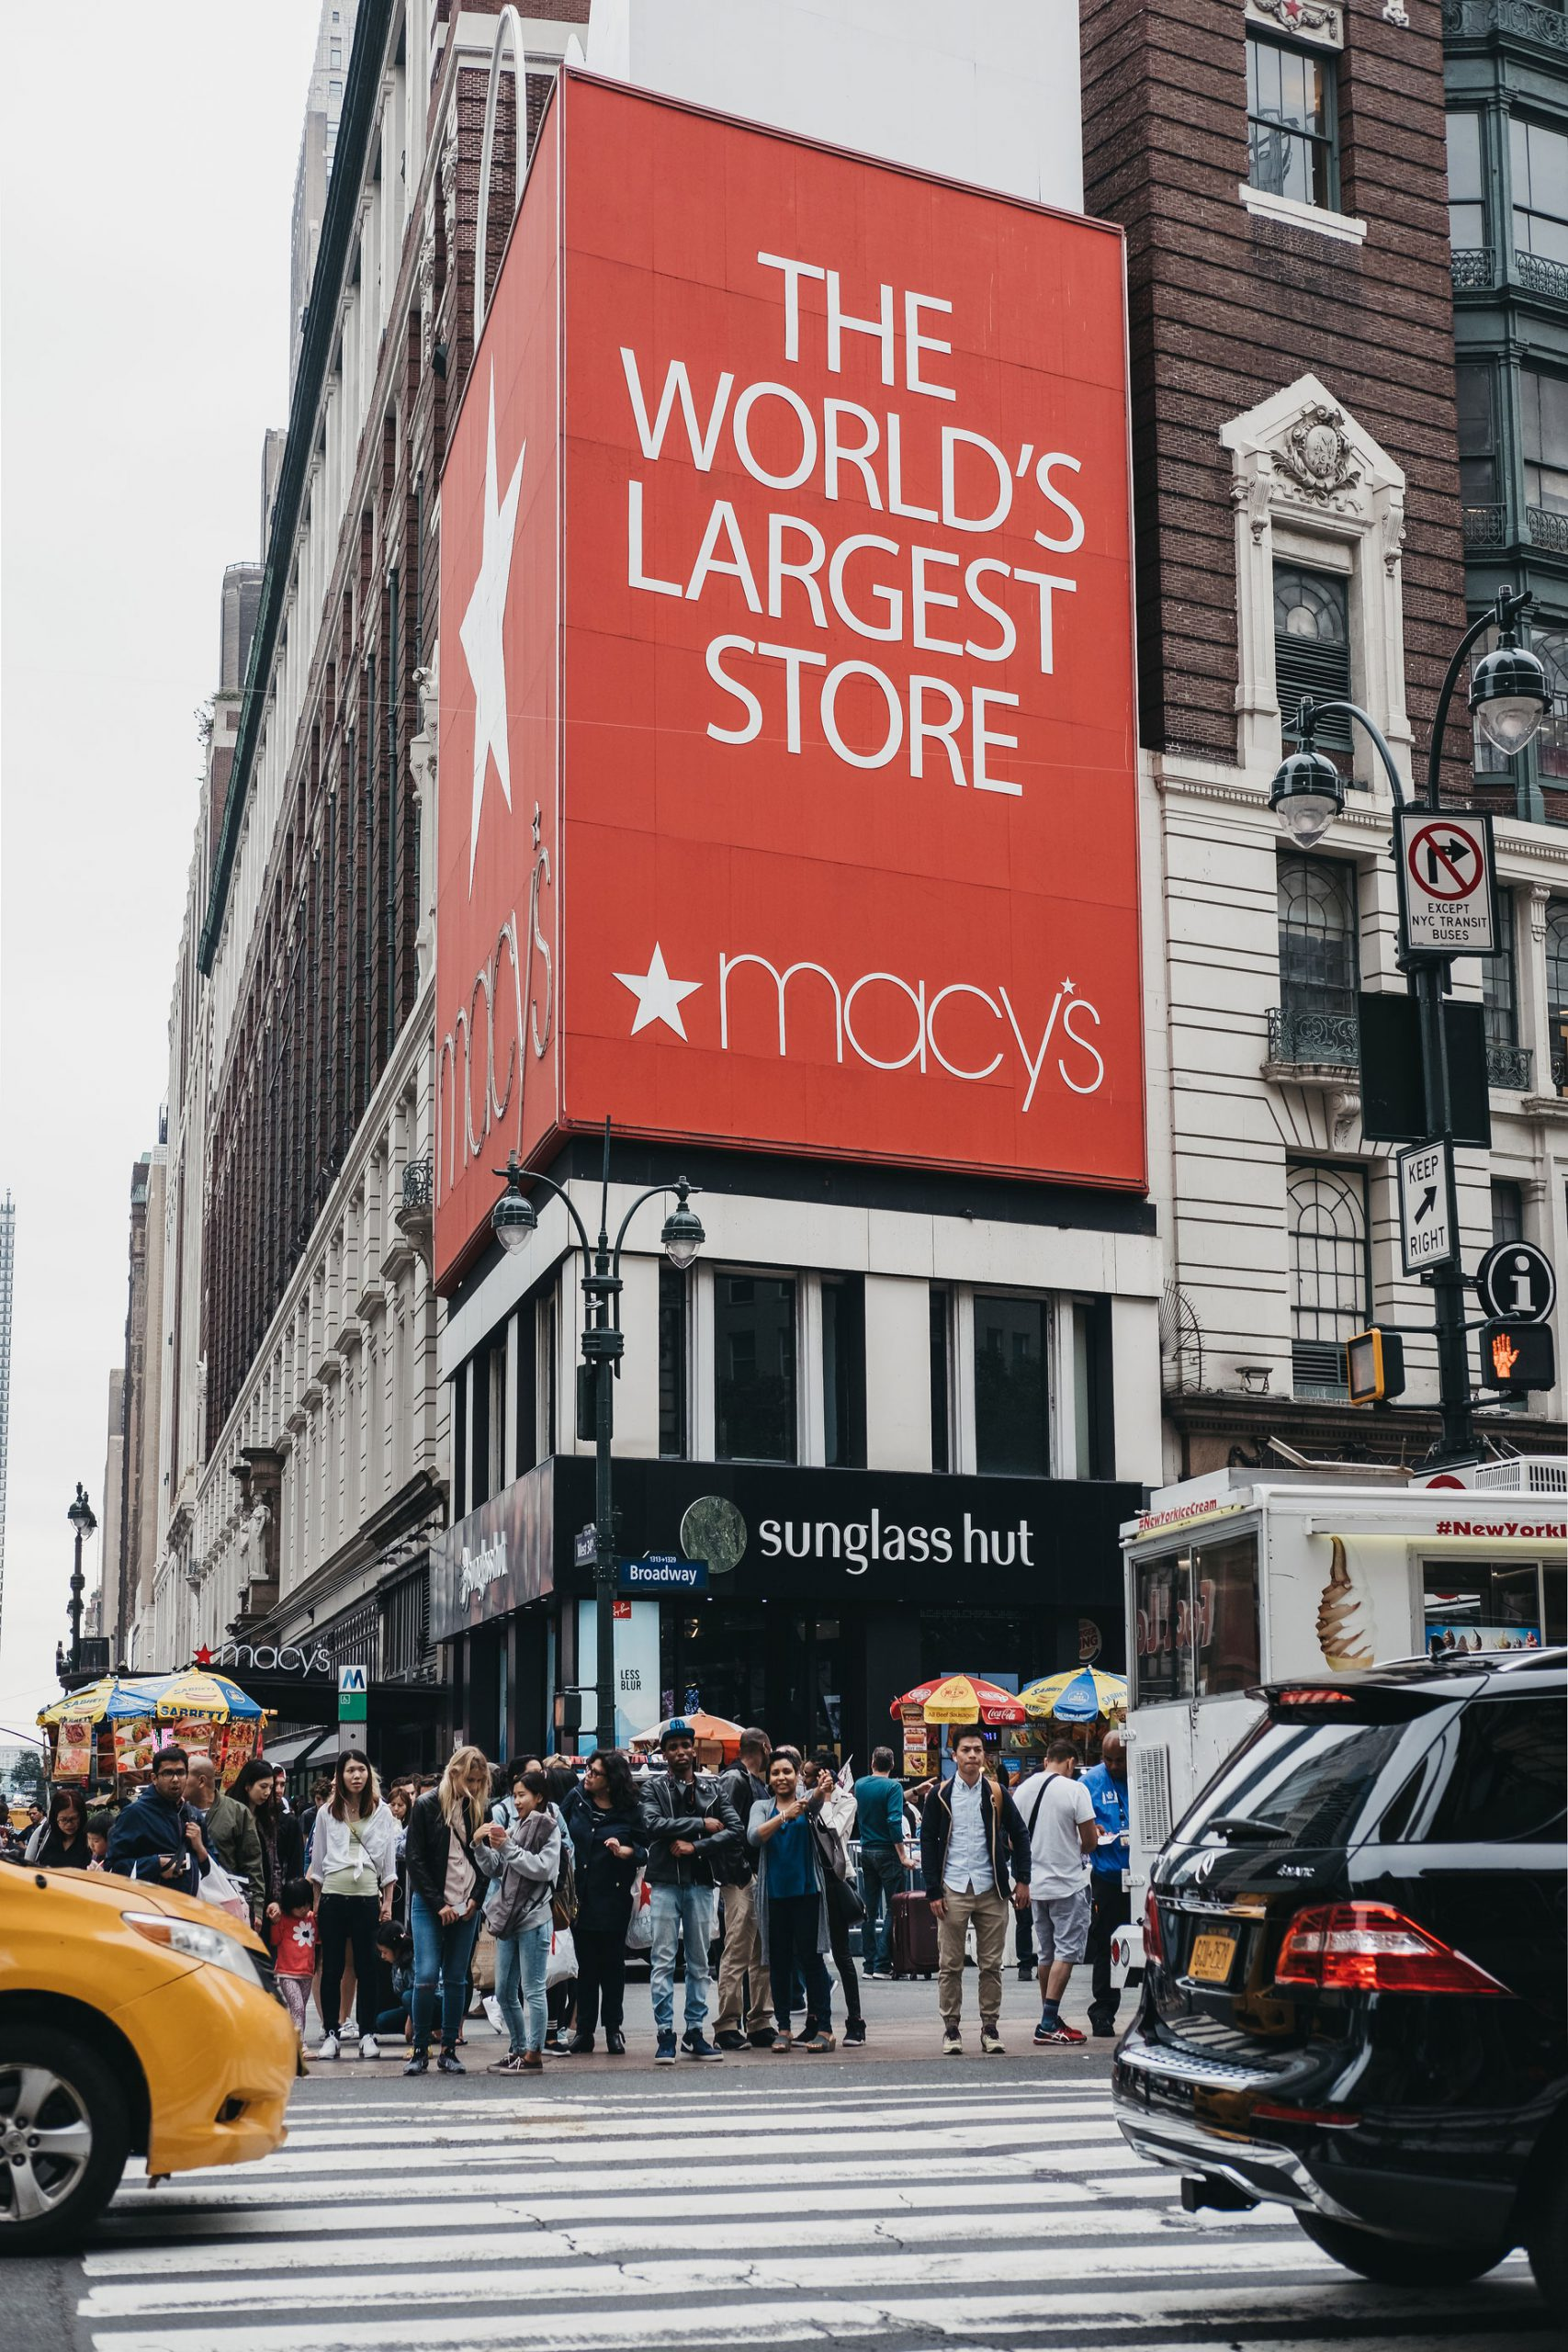 Macys shoppingsenter kjopesenter New York Manhattan USA